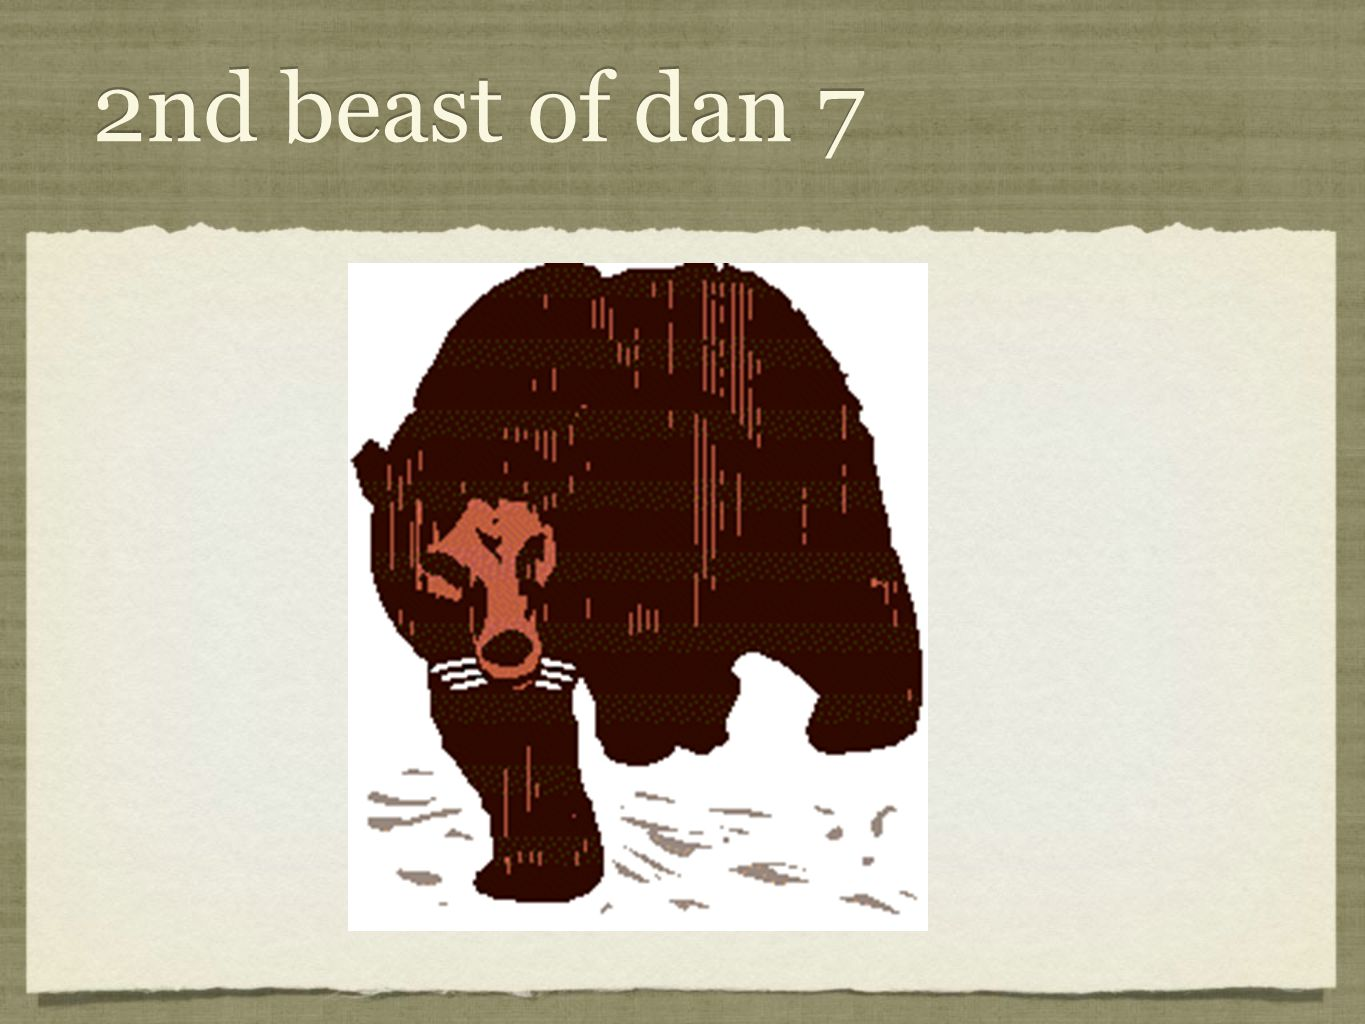 2nd beast of dan 7